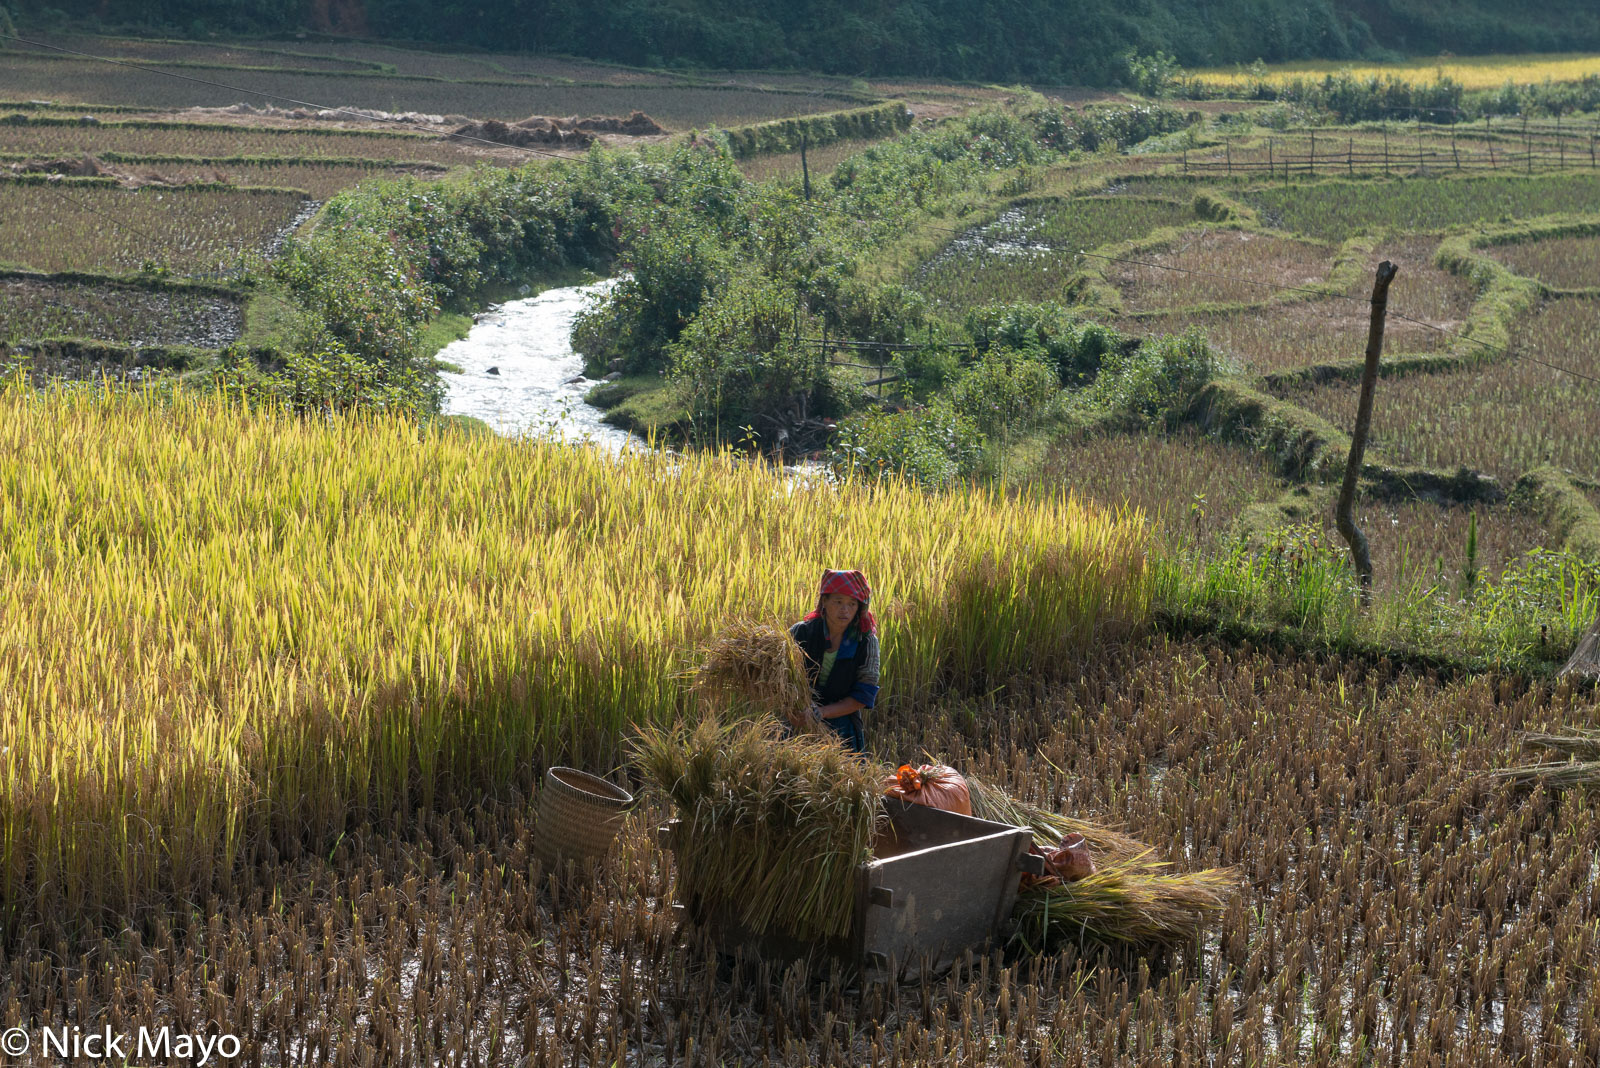 Head Scarf,Miao,Paddy,Threshing,Vietnam,Wicker Basket,Yen Bai, photo